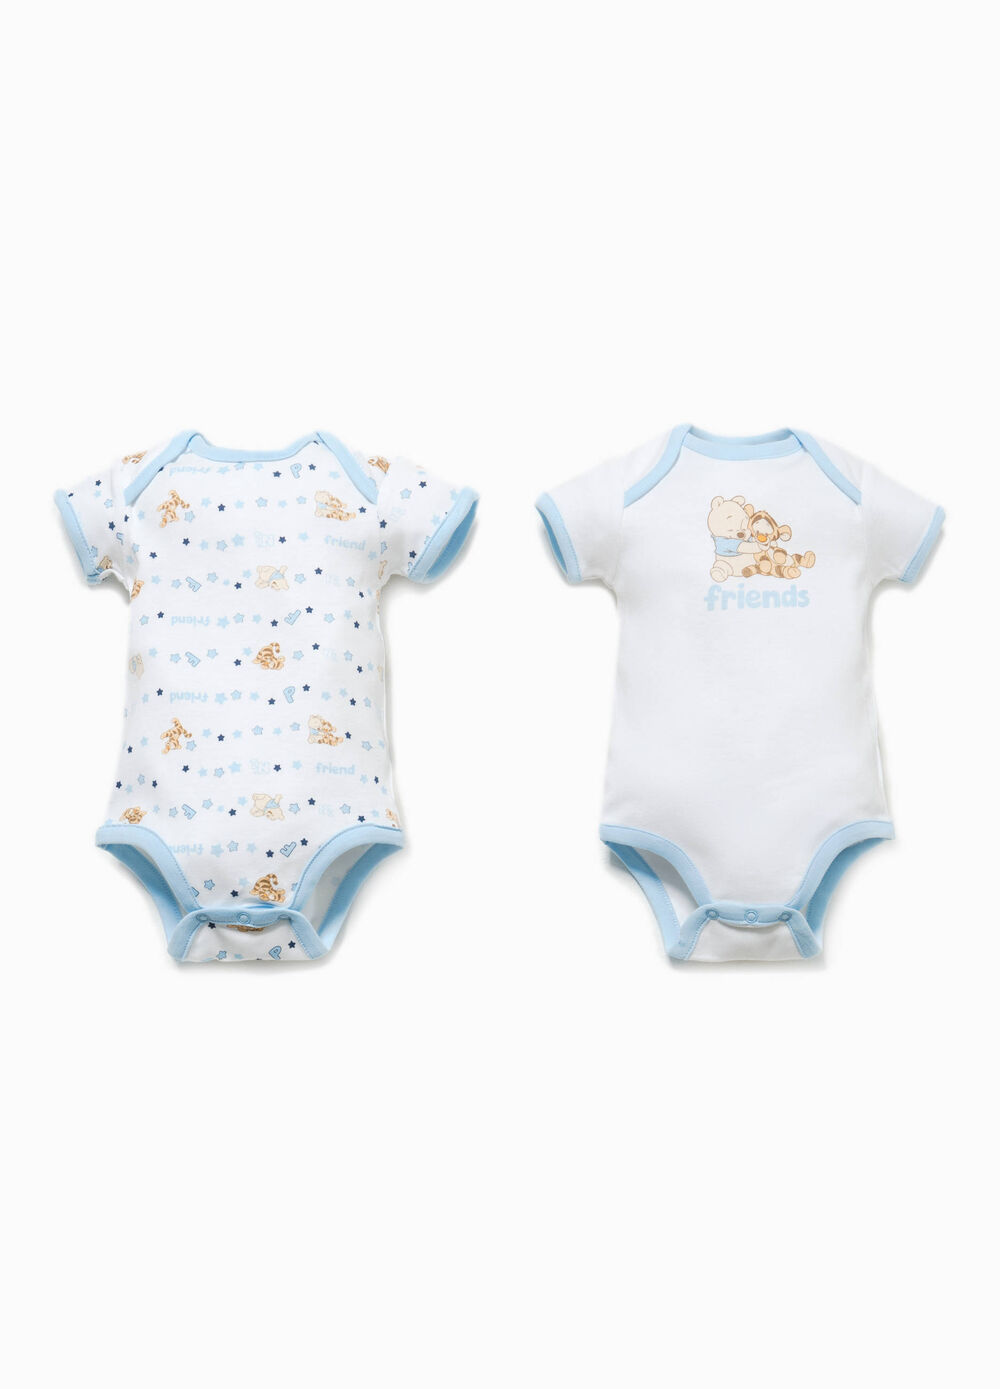 Two-pack Winnie the Pooh patterned bodysuits